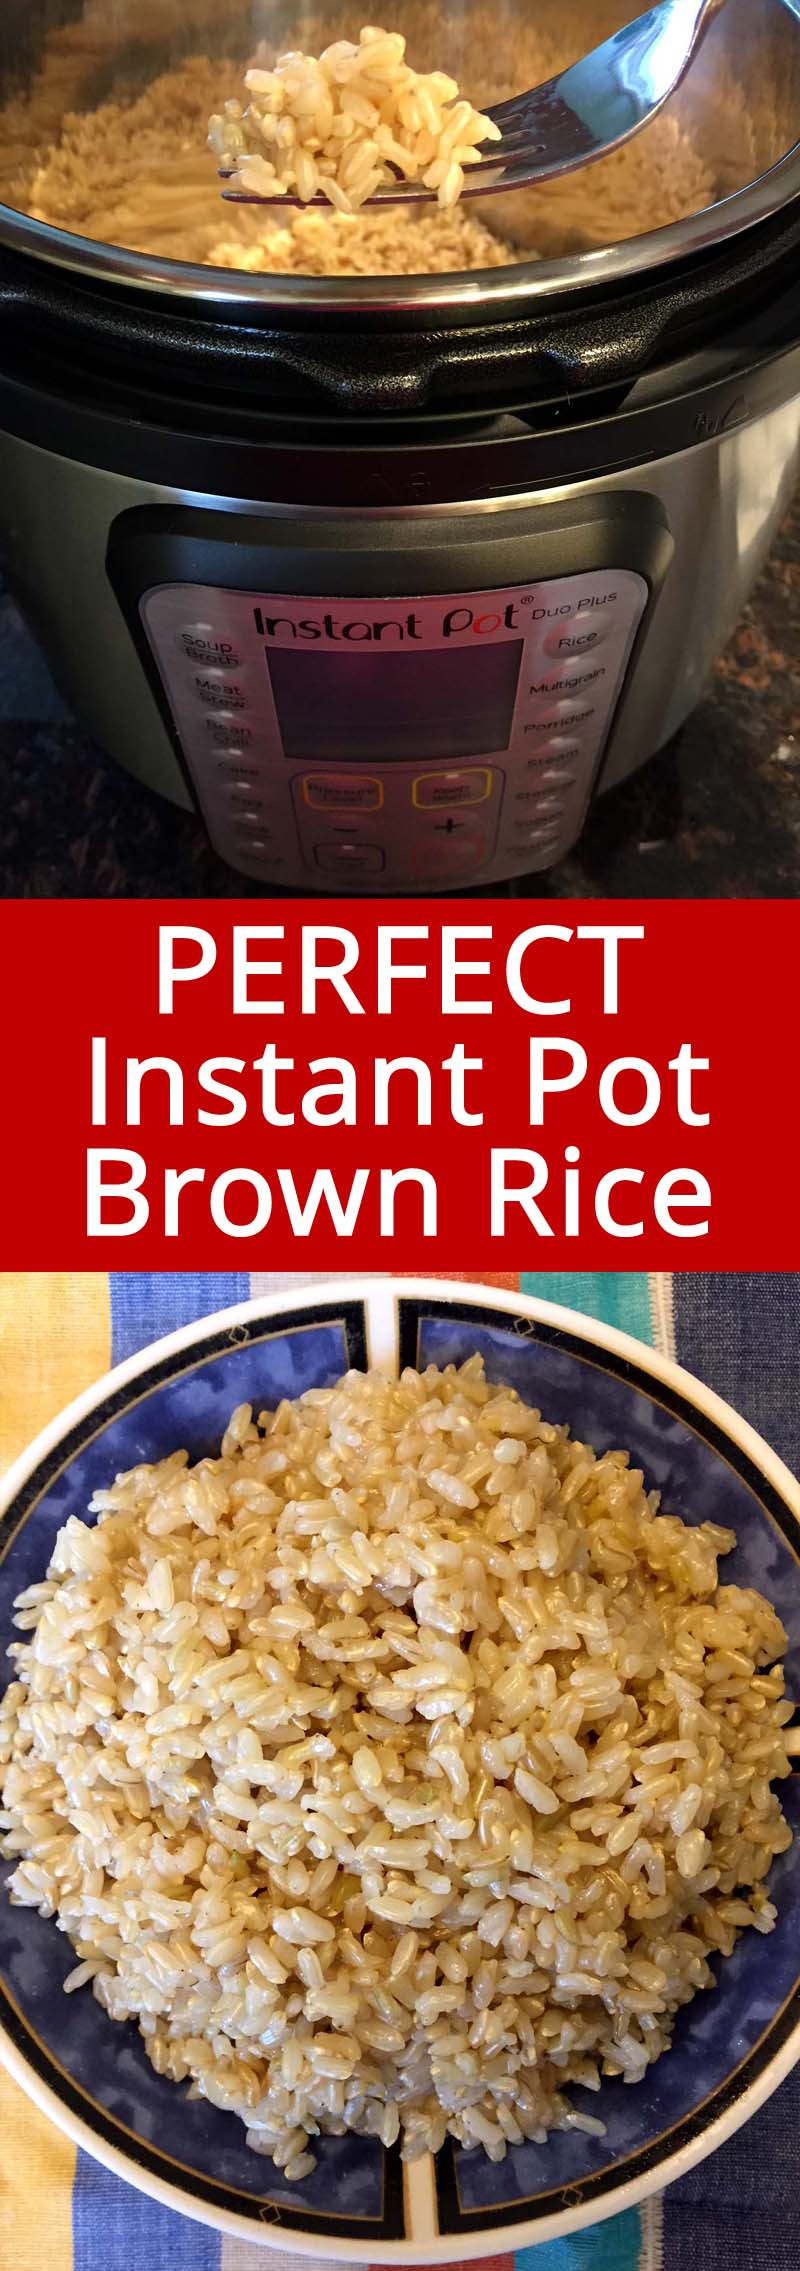 Cooking Brown Rice In Instant Pot  Instant Pot Brown Rice – How To Cook Brown Rice In A